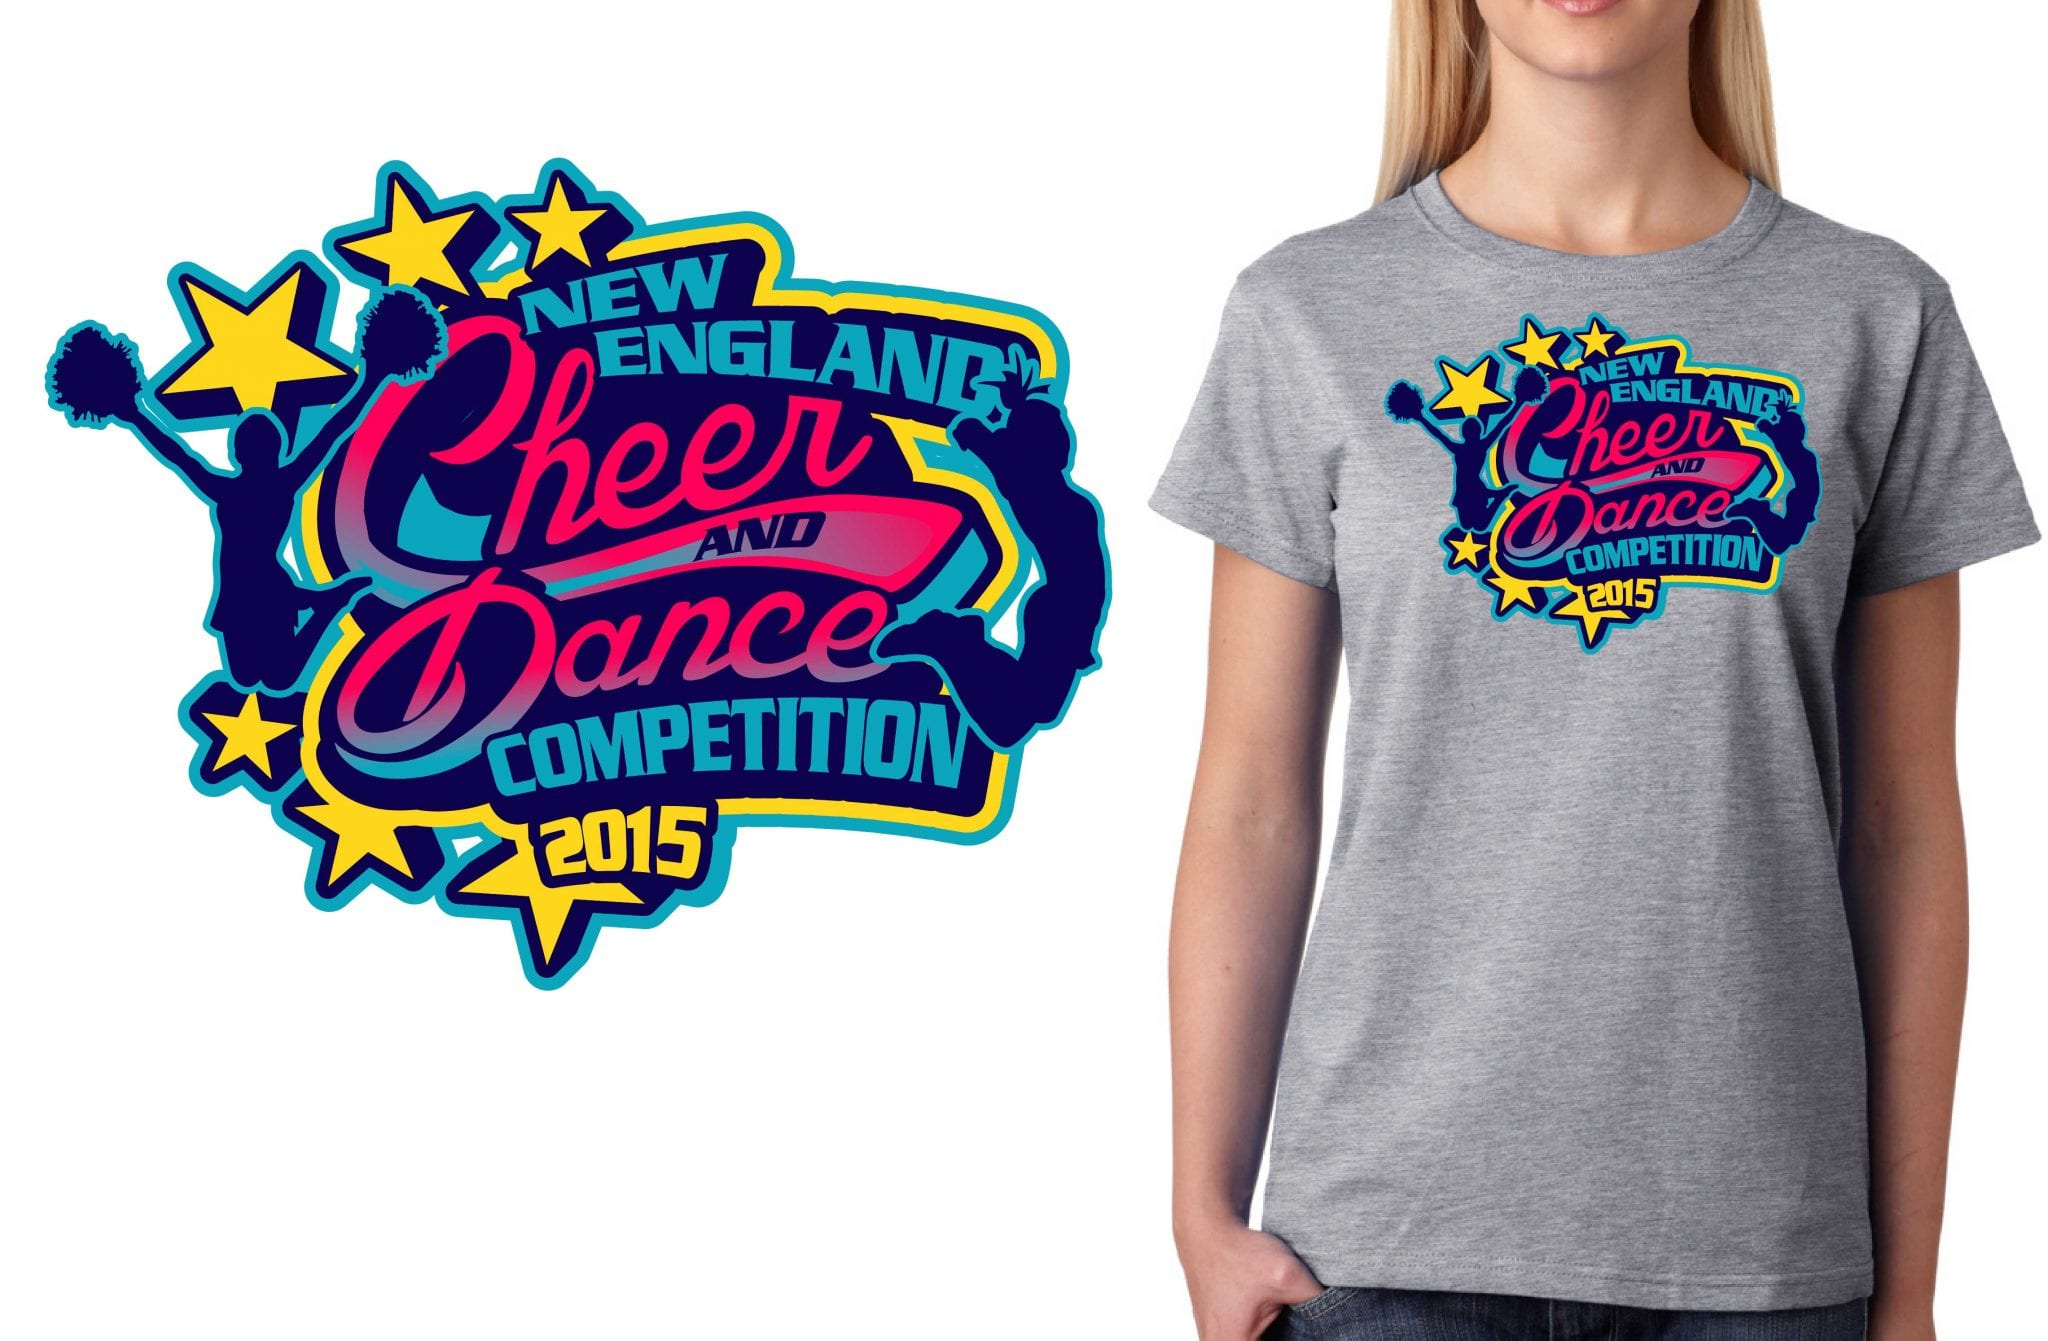 2015 new england cheer and dance competition best tshirt Cheerleading t shirt designs